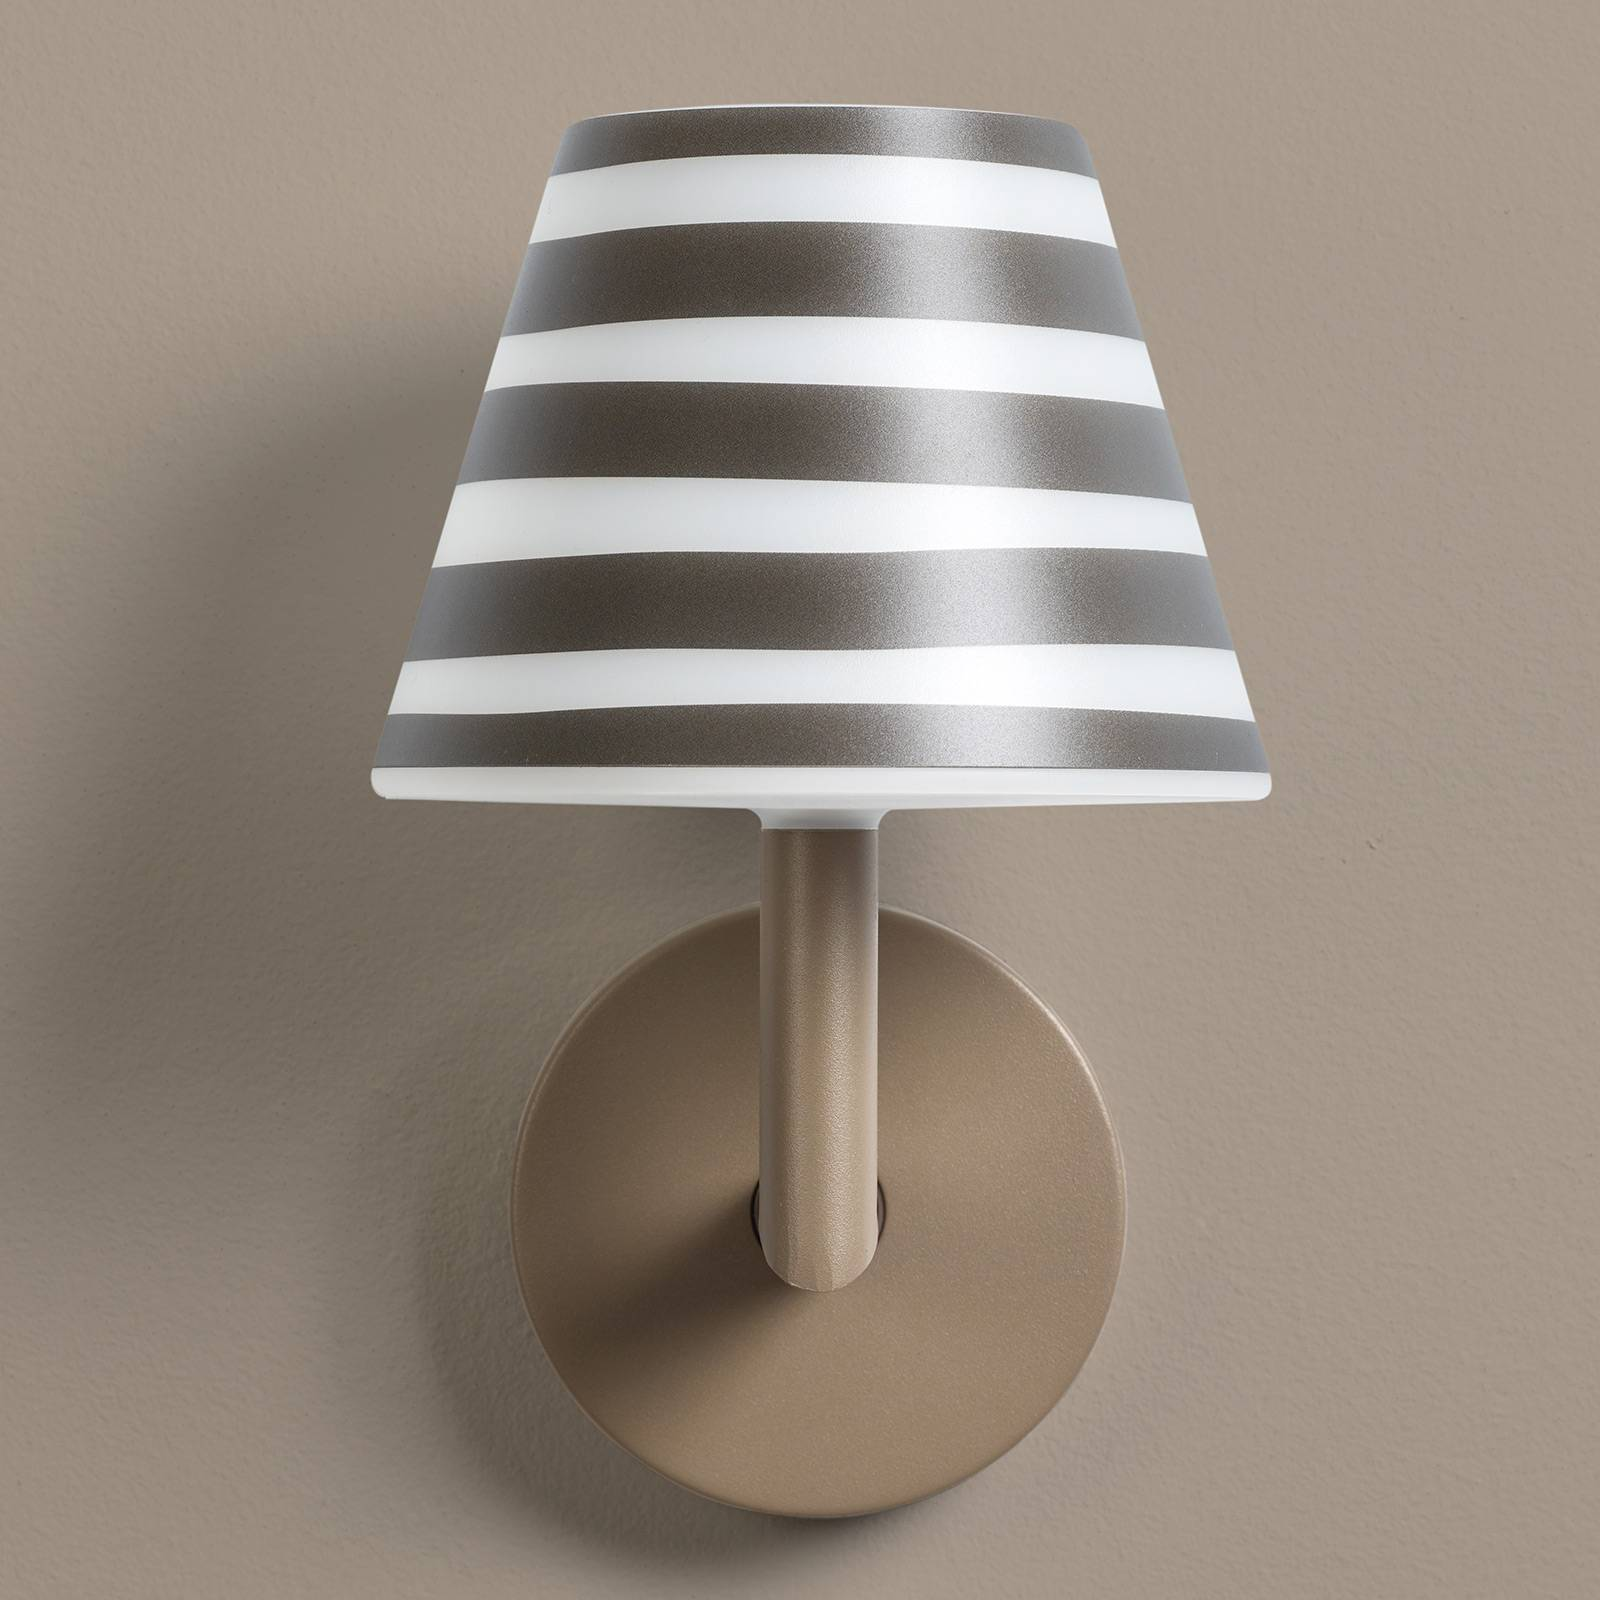 Fatboy LED-Wandleuchte Add the Wally taupe